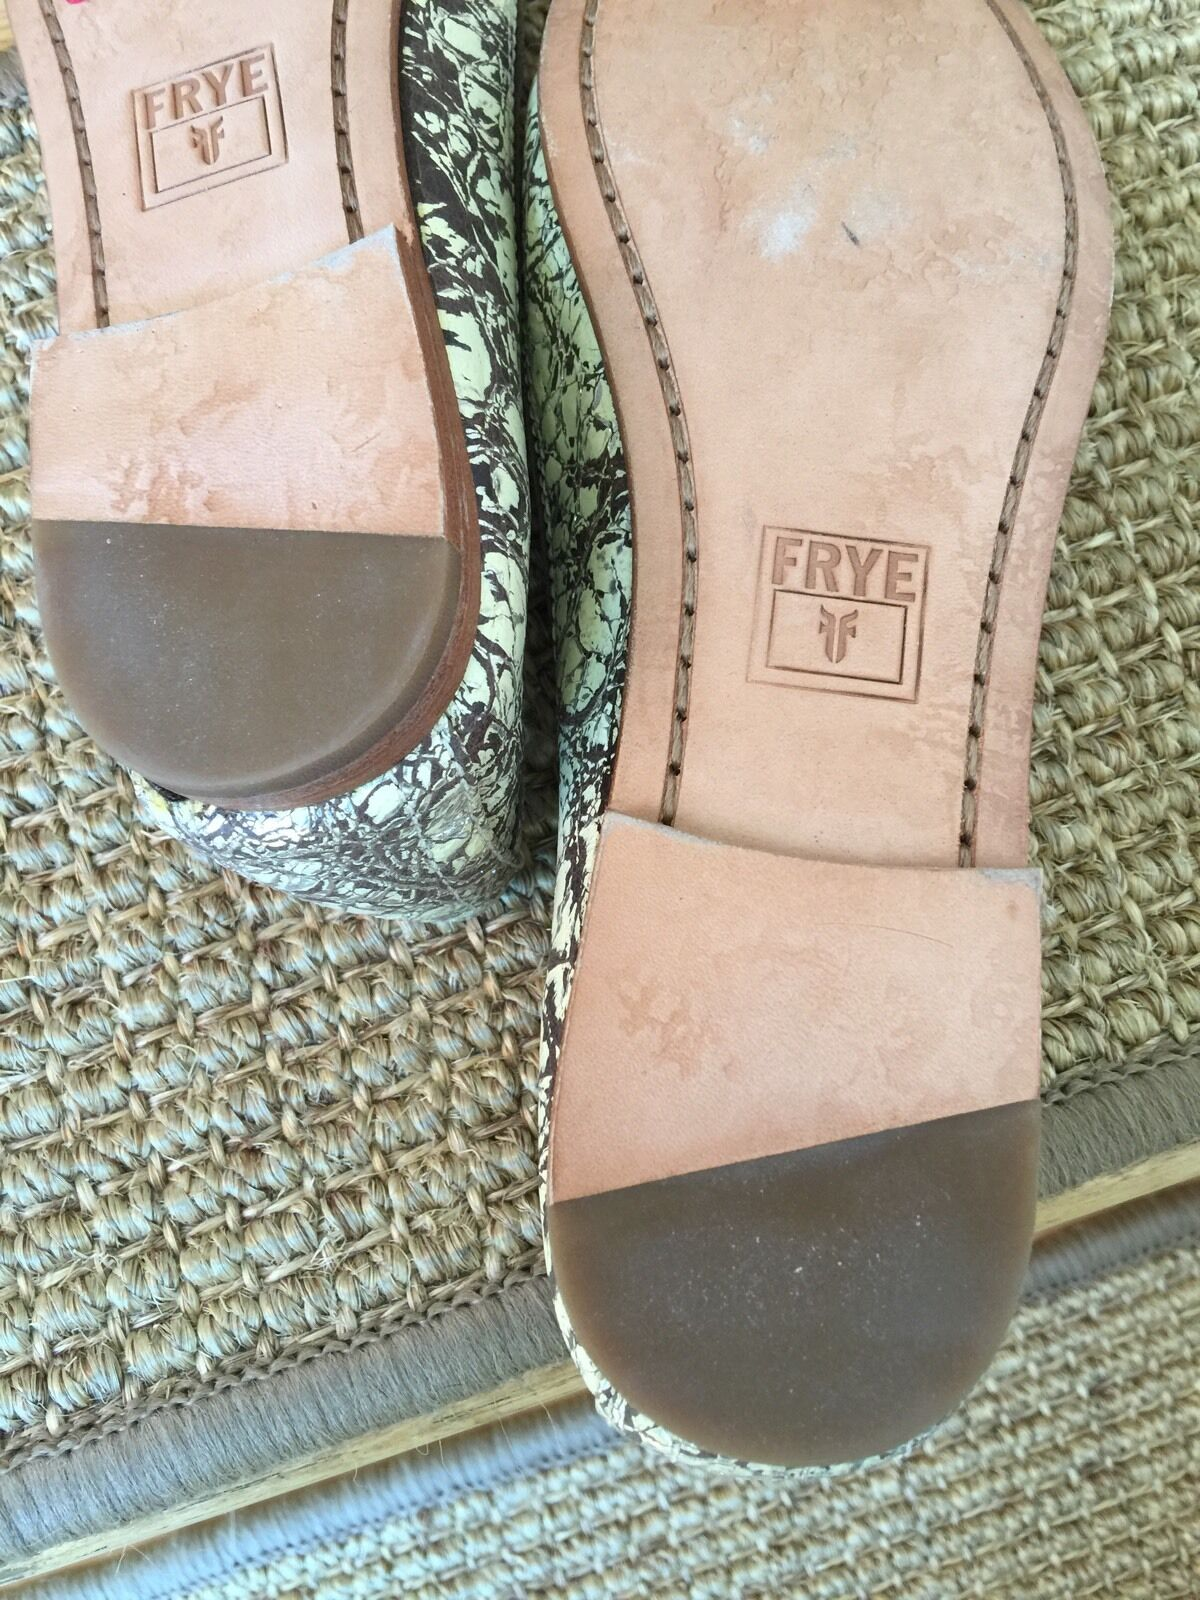 New FRYE Carson Carson Carson Ballet Flat Silver Leather Crackle Leather sz 6  148+ 81629a